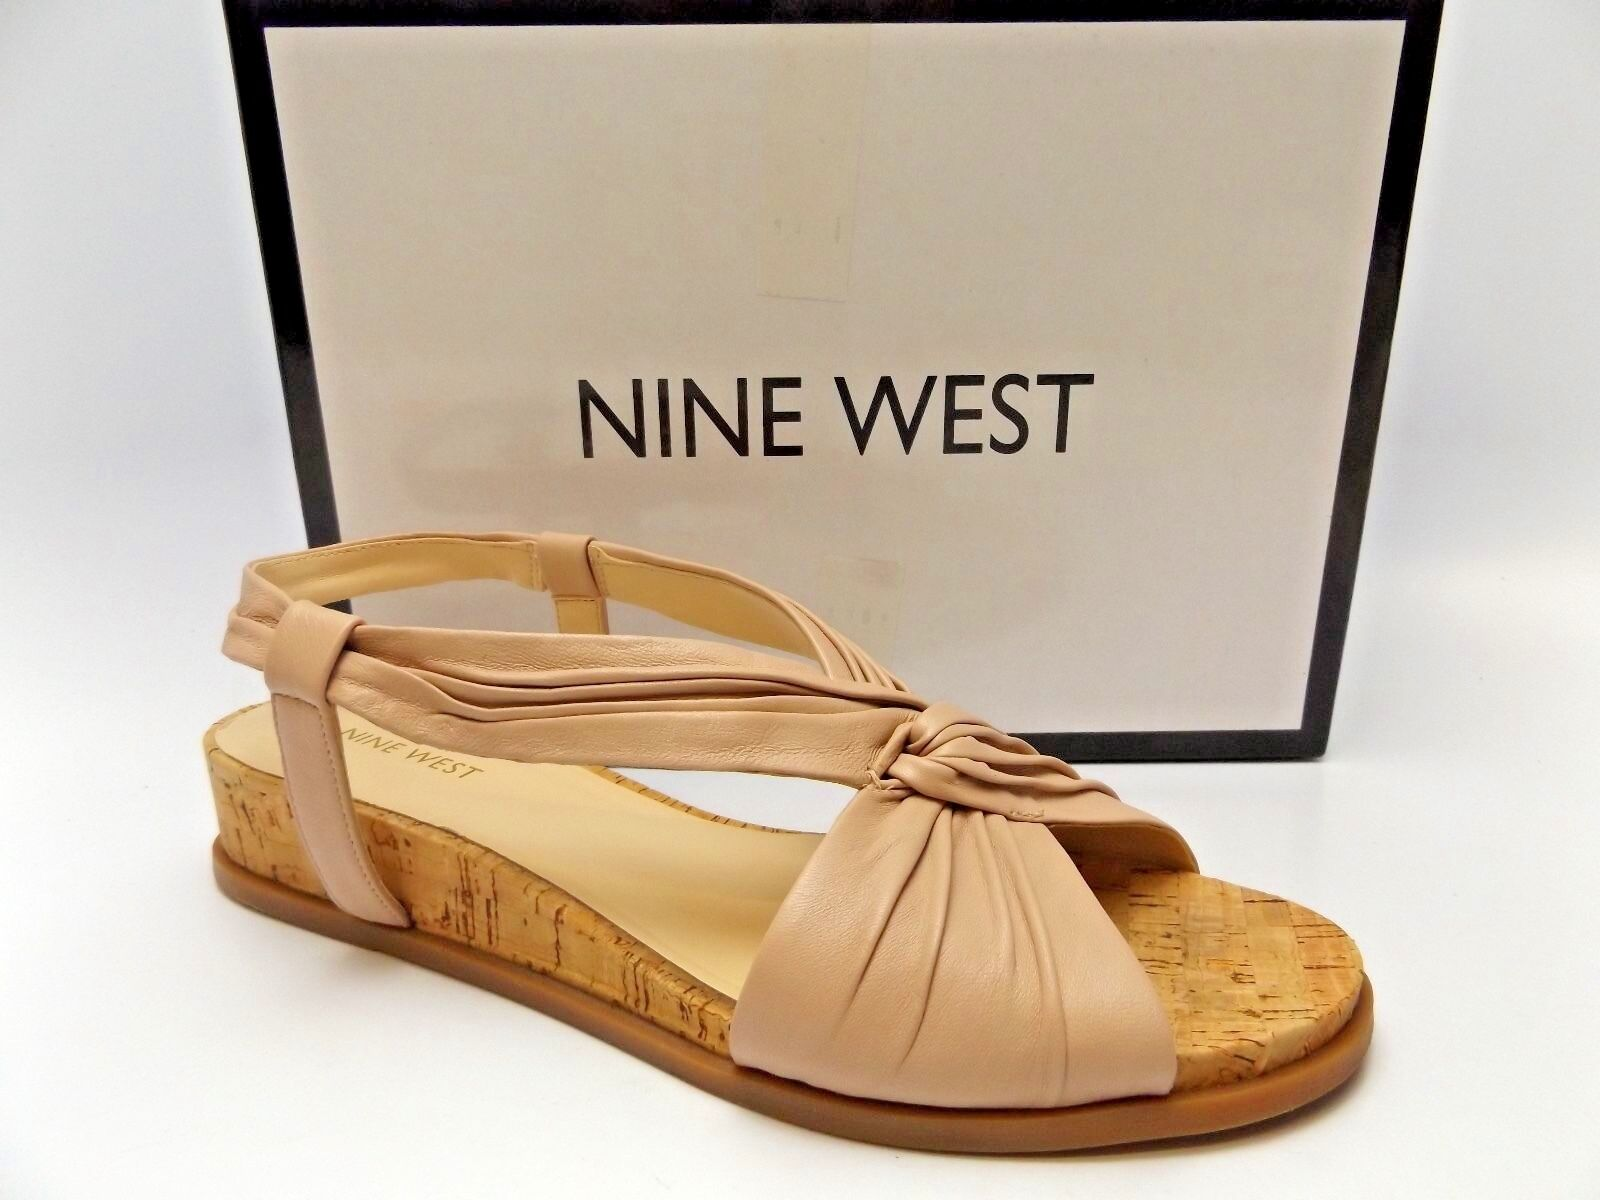 NINE Leather WEST Manwella Nude Pink Leather NINE Cork Low-Wedge Slingbacks SZ 9.0 M  D2876 b4239a